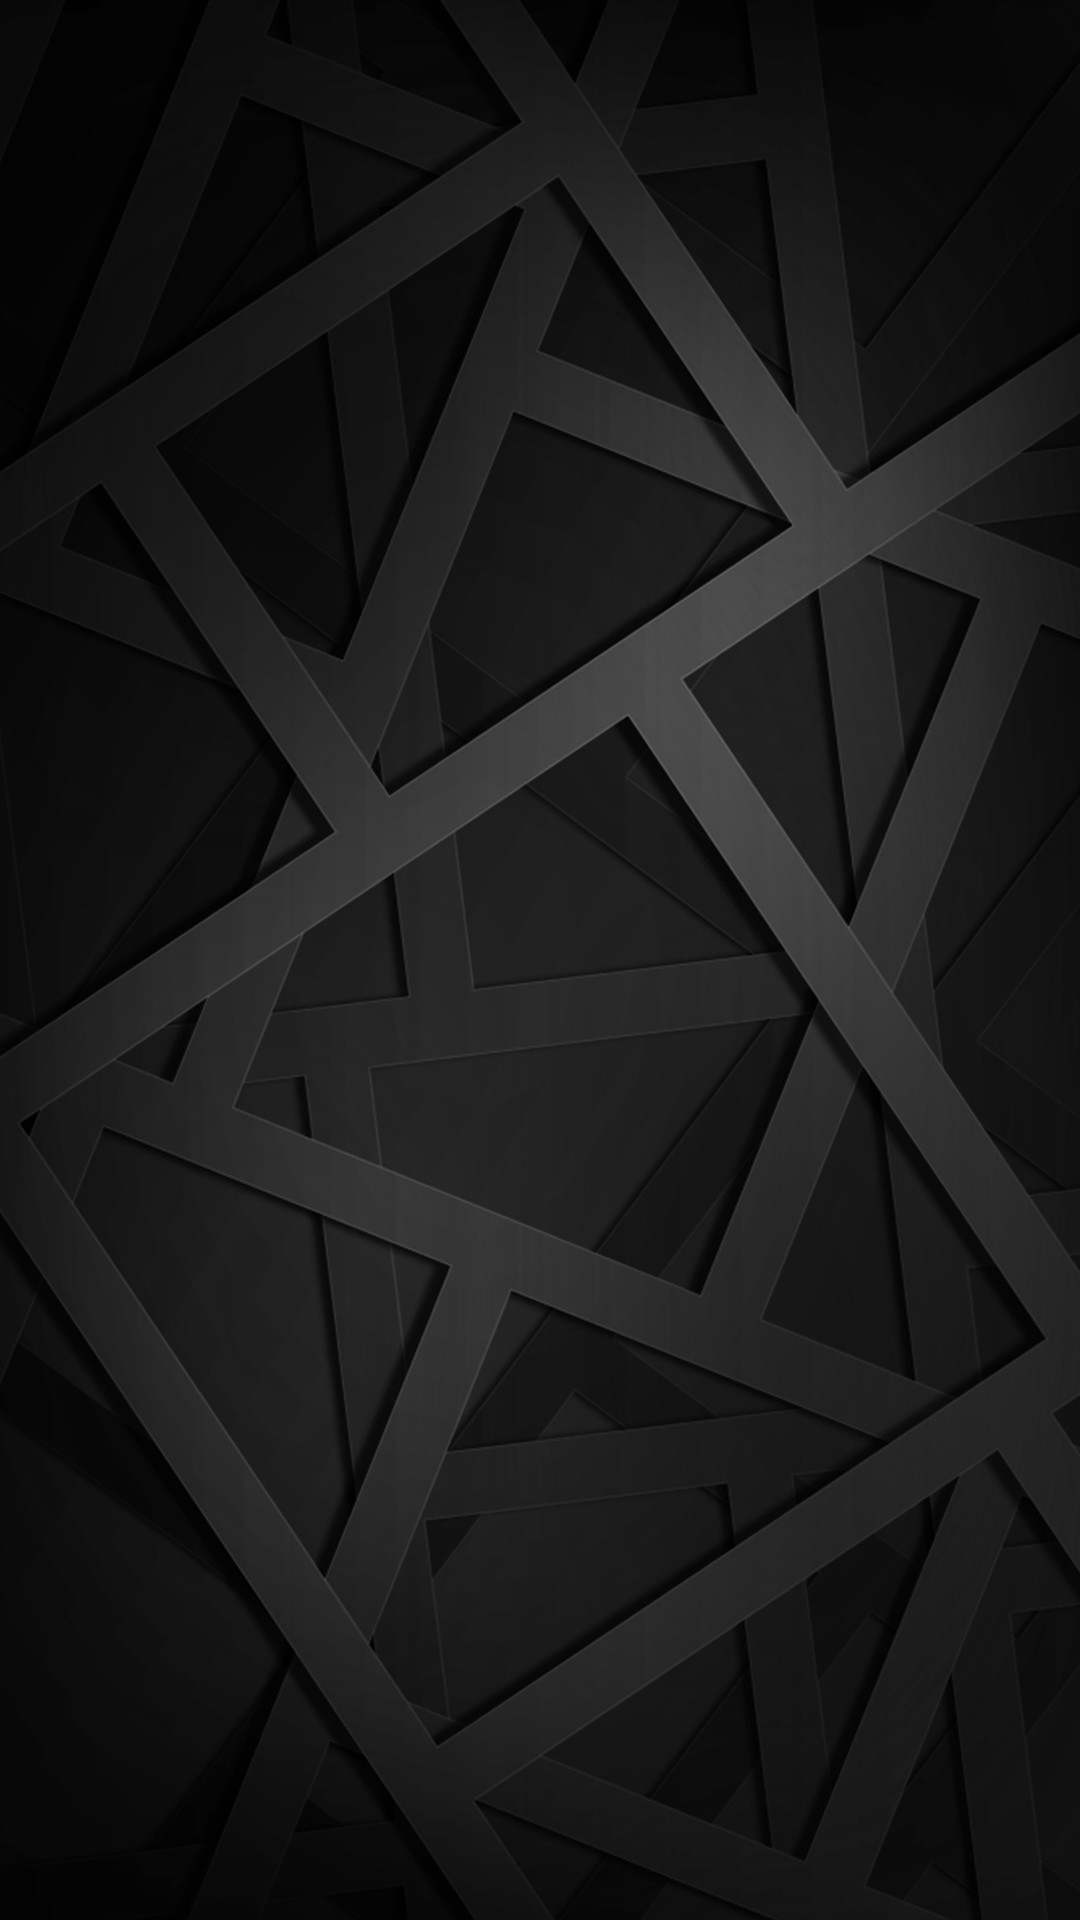 1080x1920 Geometric Black Phone Wallpaper